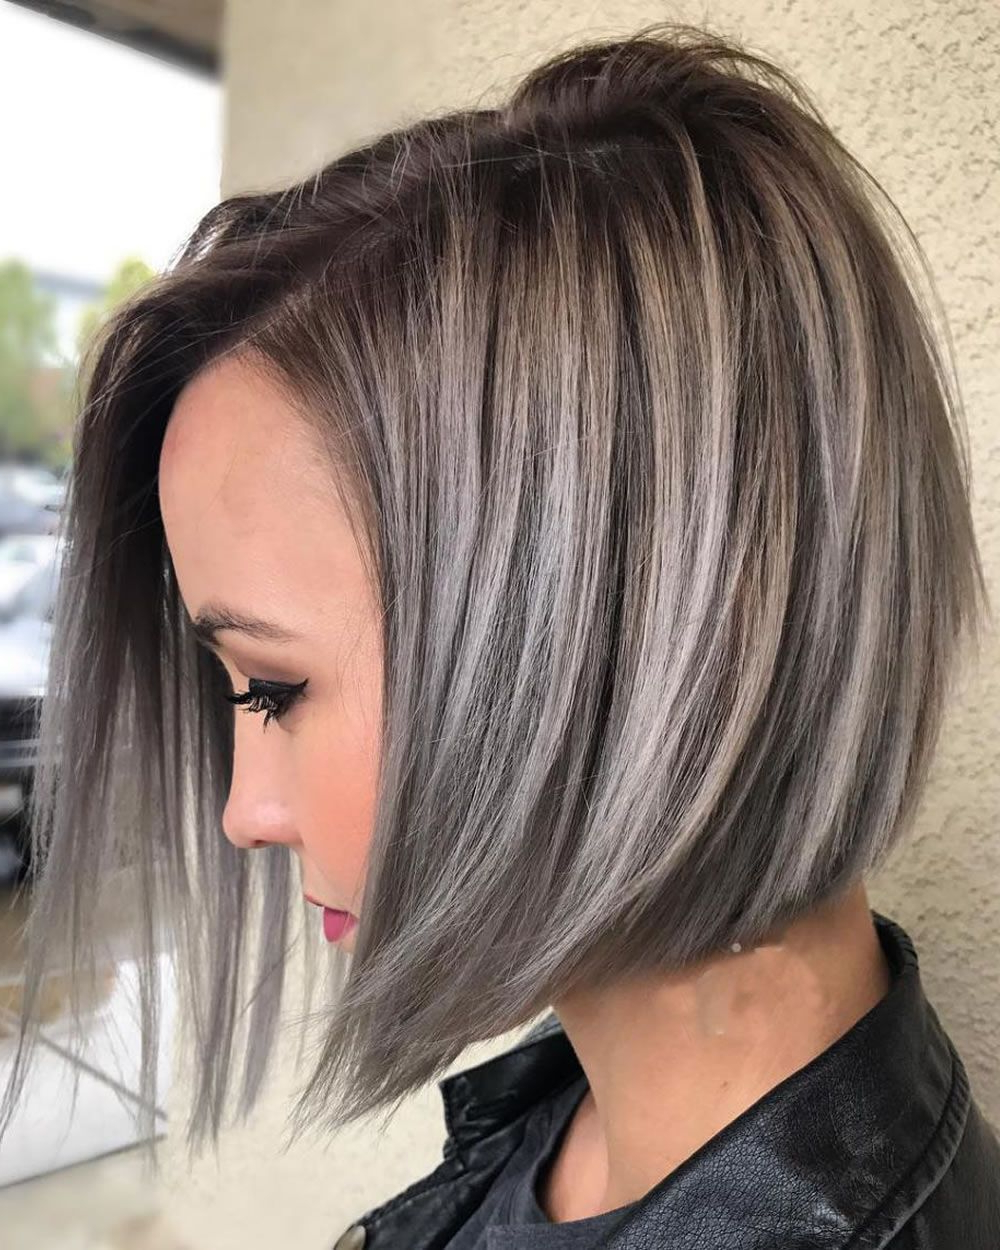 Pinstephanie Joseph On Hair | Pinterest | Hair, Hair Styles And Intended For Silver Balayage Bob Haircuts With Swoopy Layers (View 7 of 20)